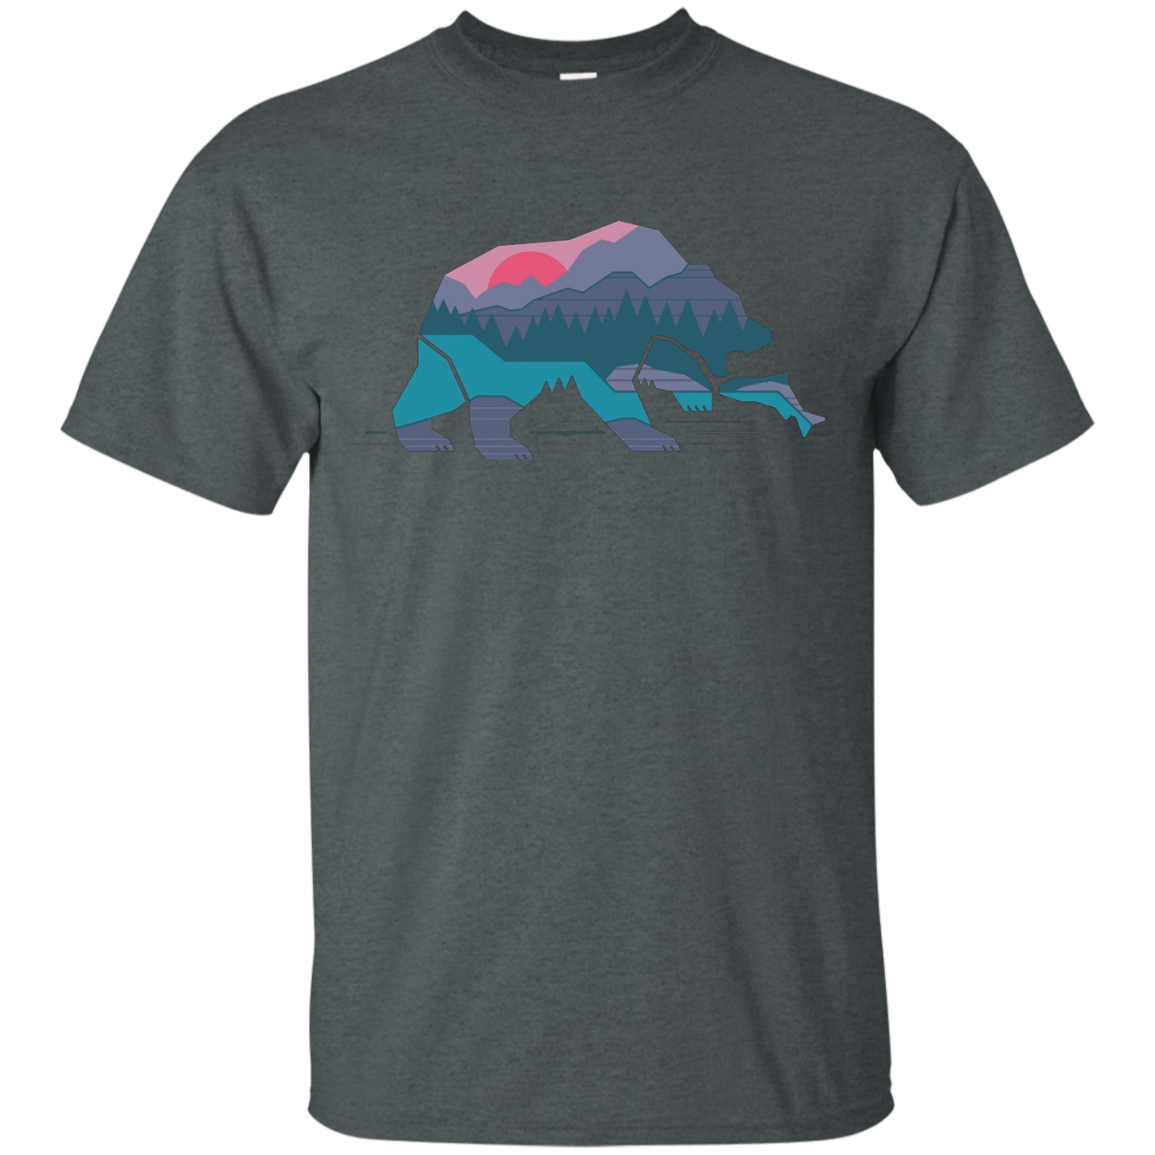 Great Smoky Mountains National Park Hiking T-Shirt